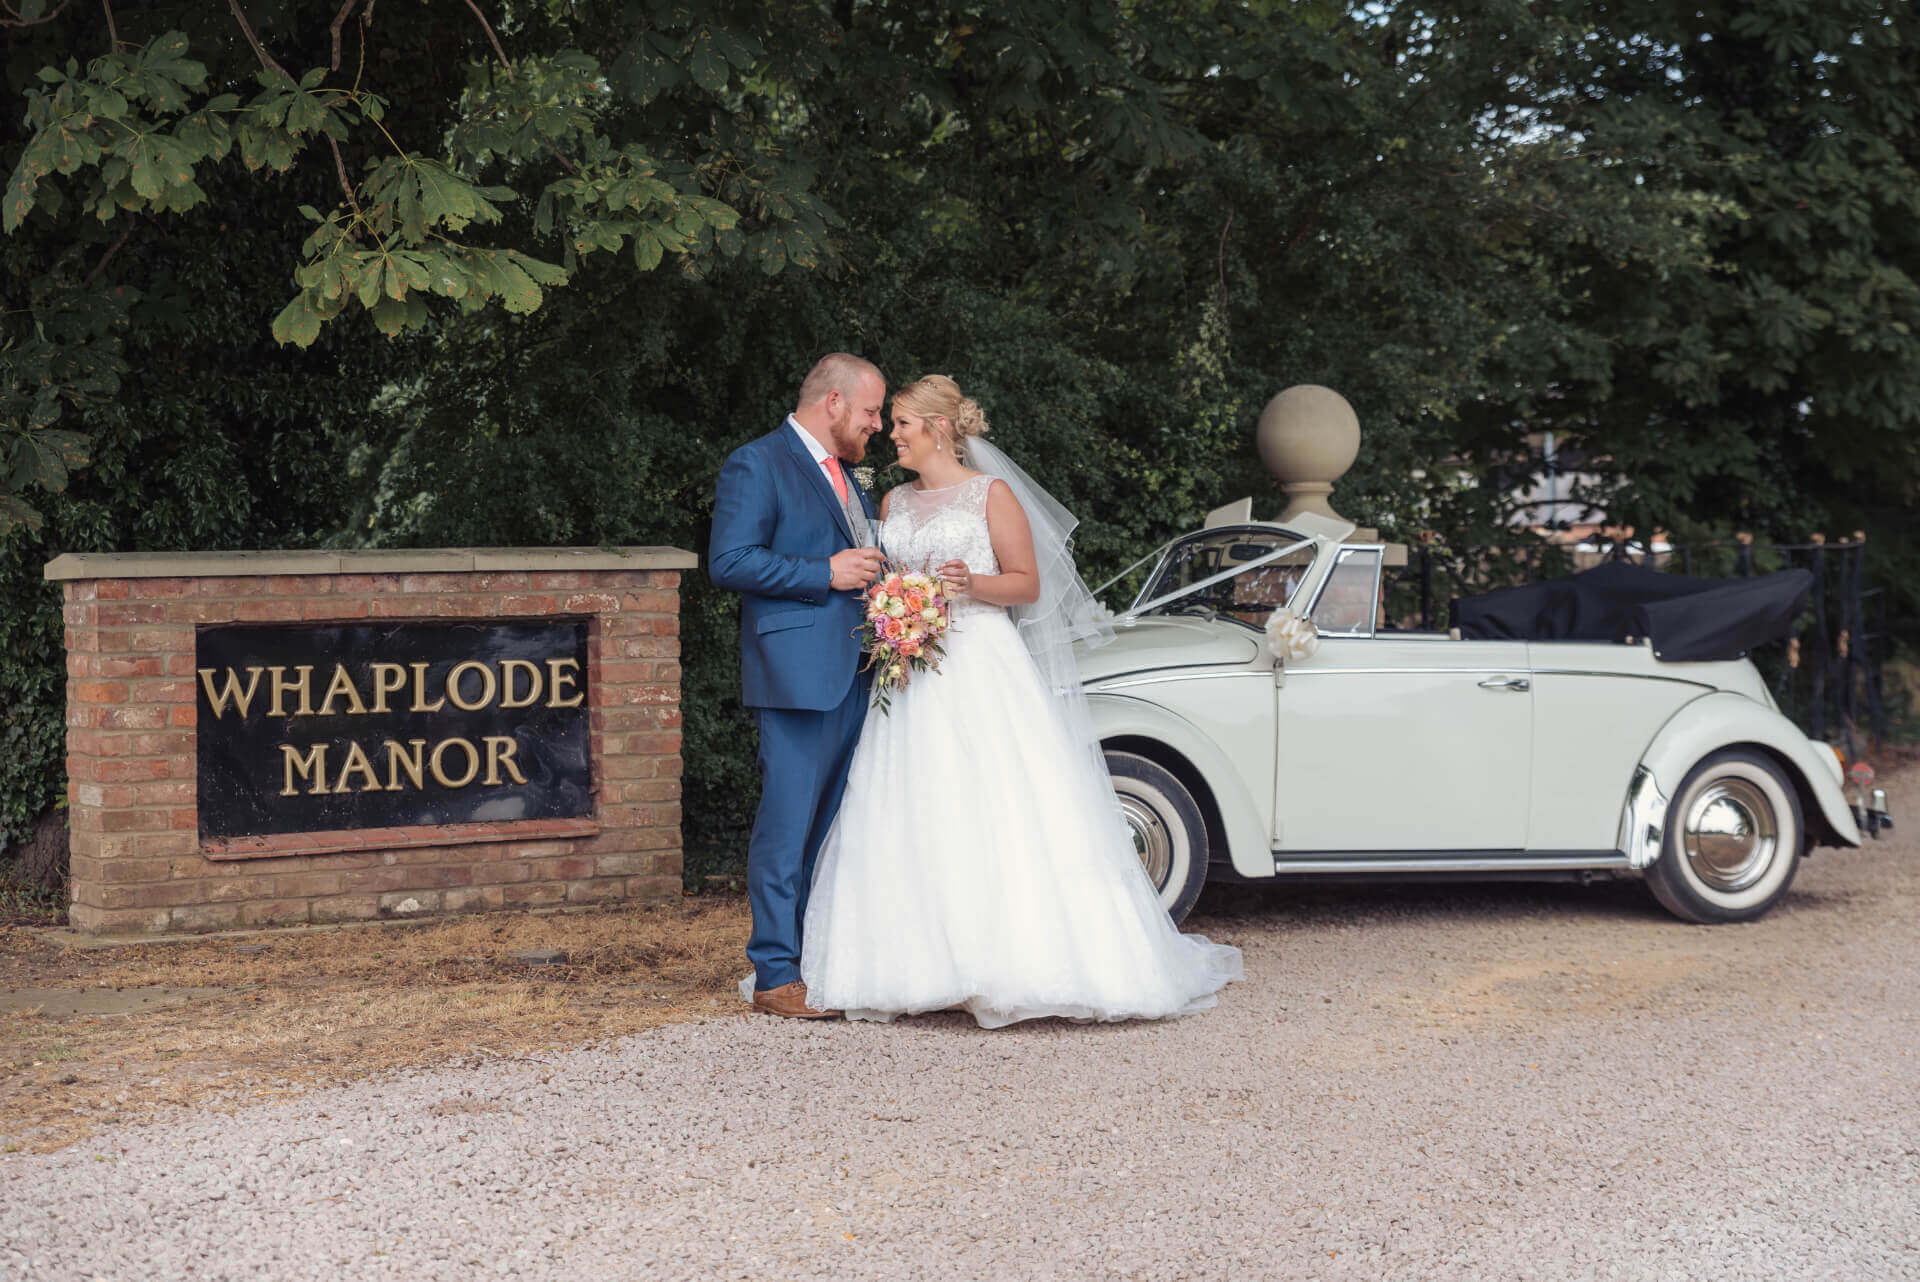 Bride and Groom portrait with wedding car outside Whaplode Manor, Spalding - By Slice of Life Photography